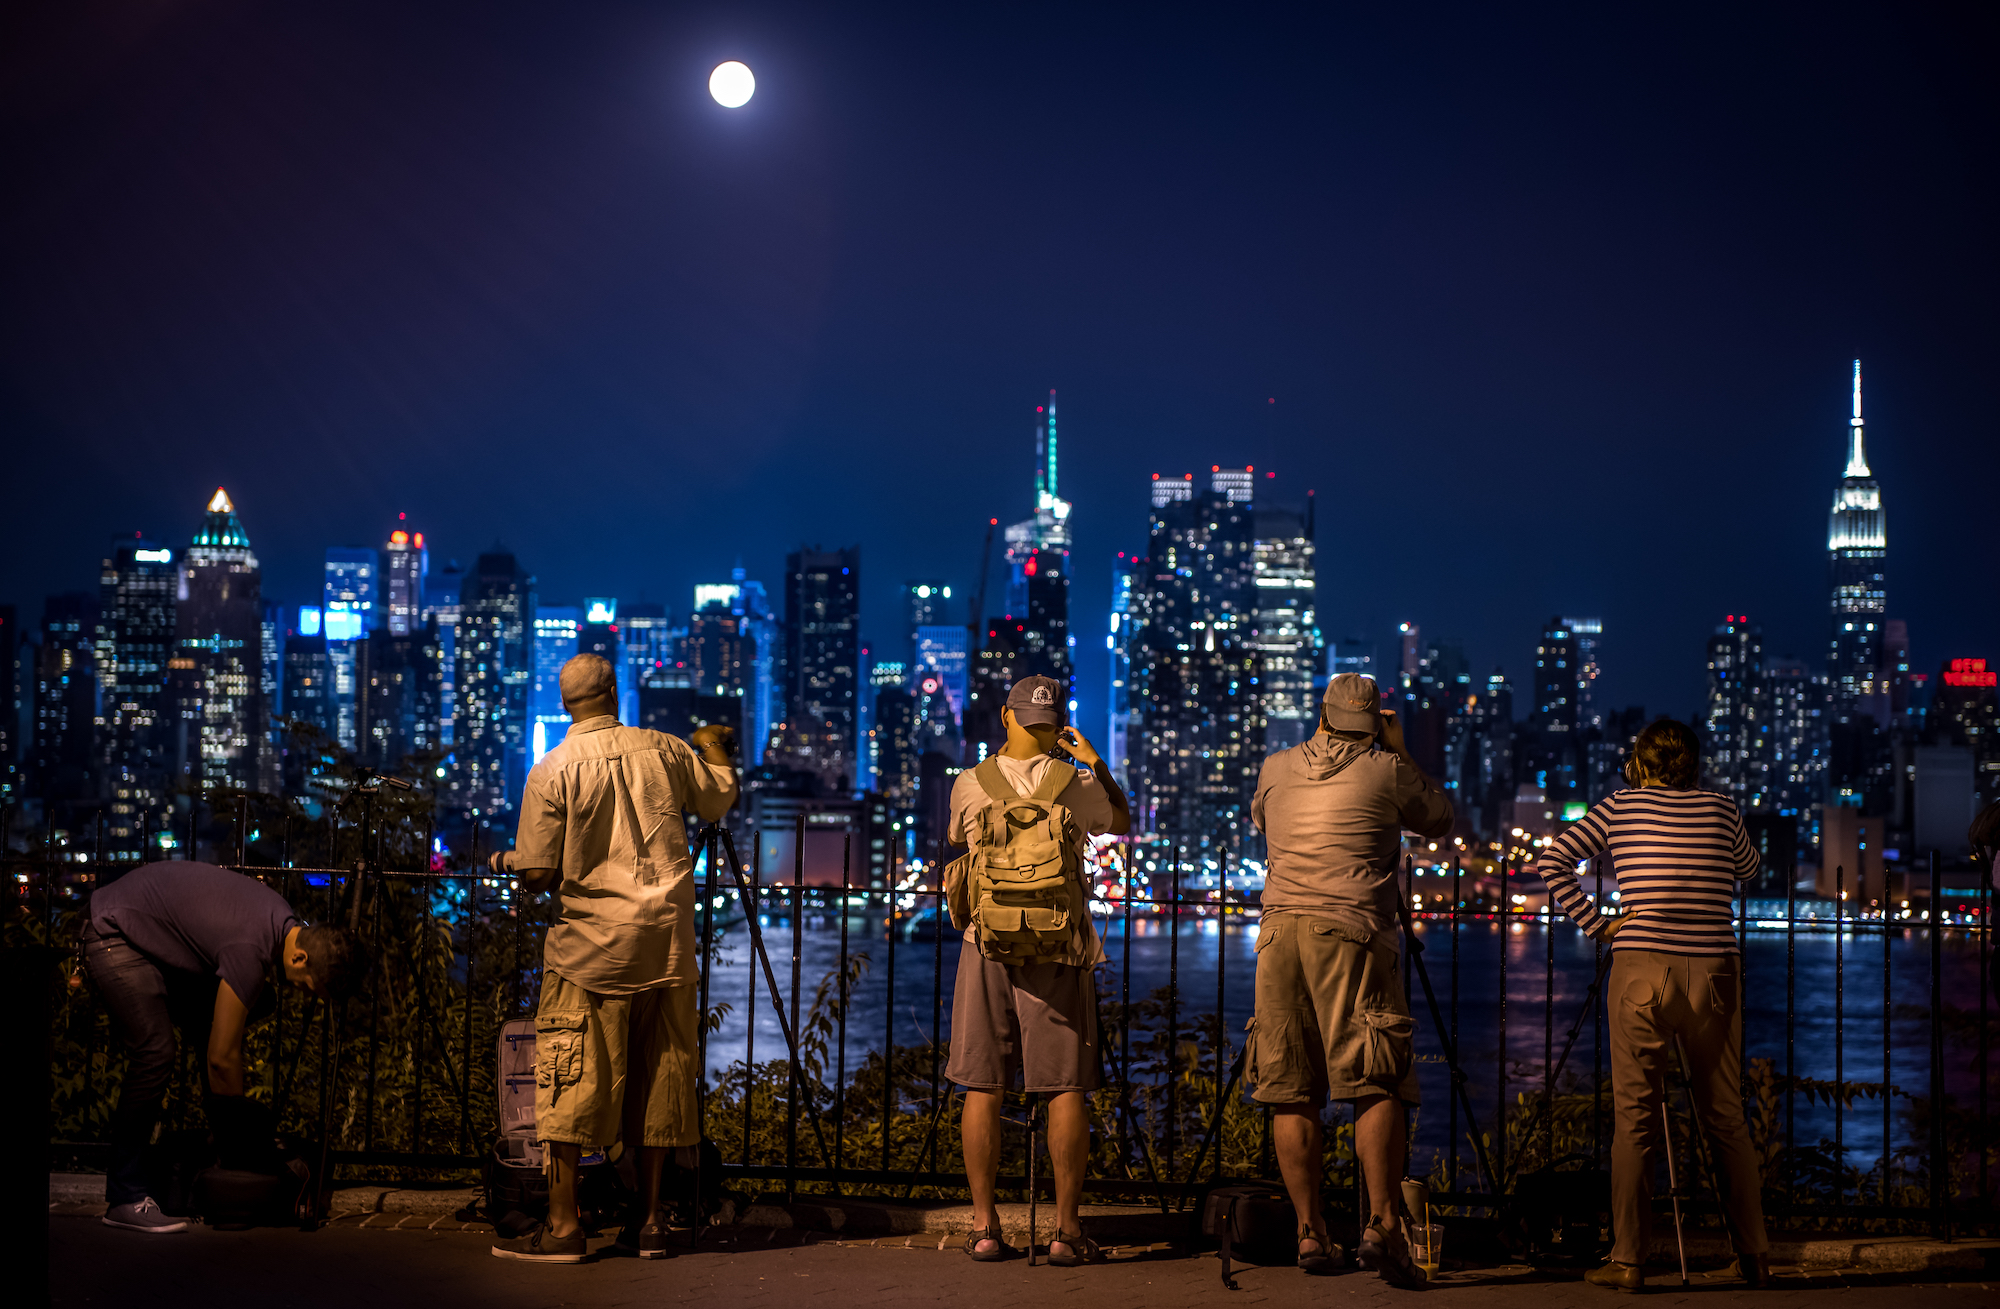 Photographers taking pictures of the New York City skyline at night